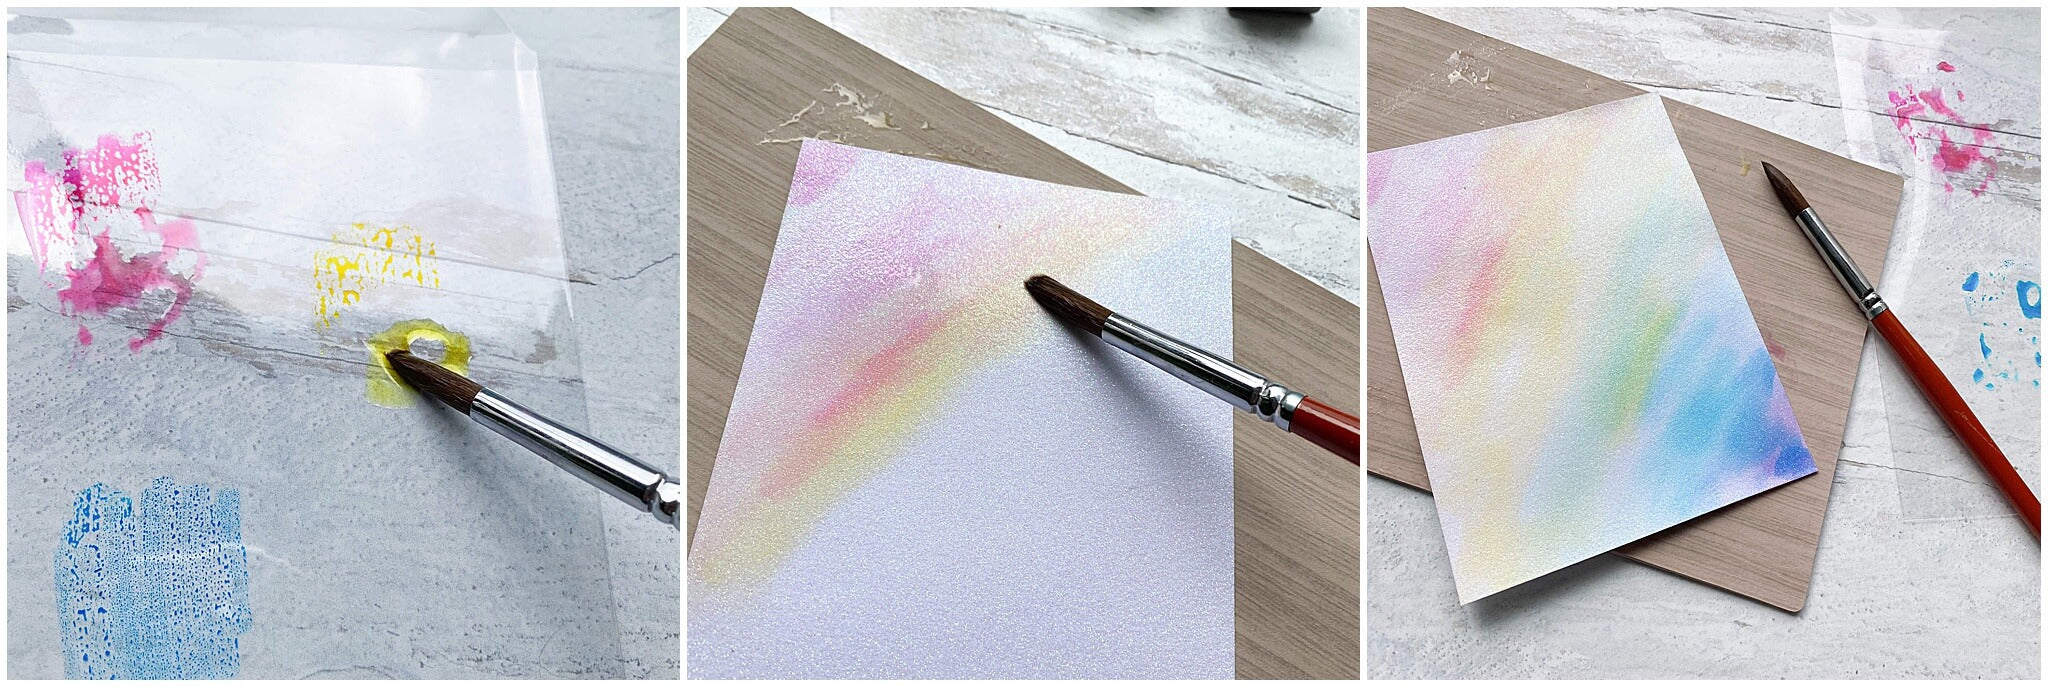 painting your paper for diy stickers